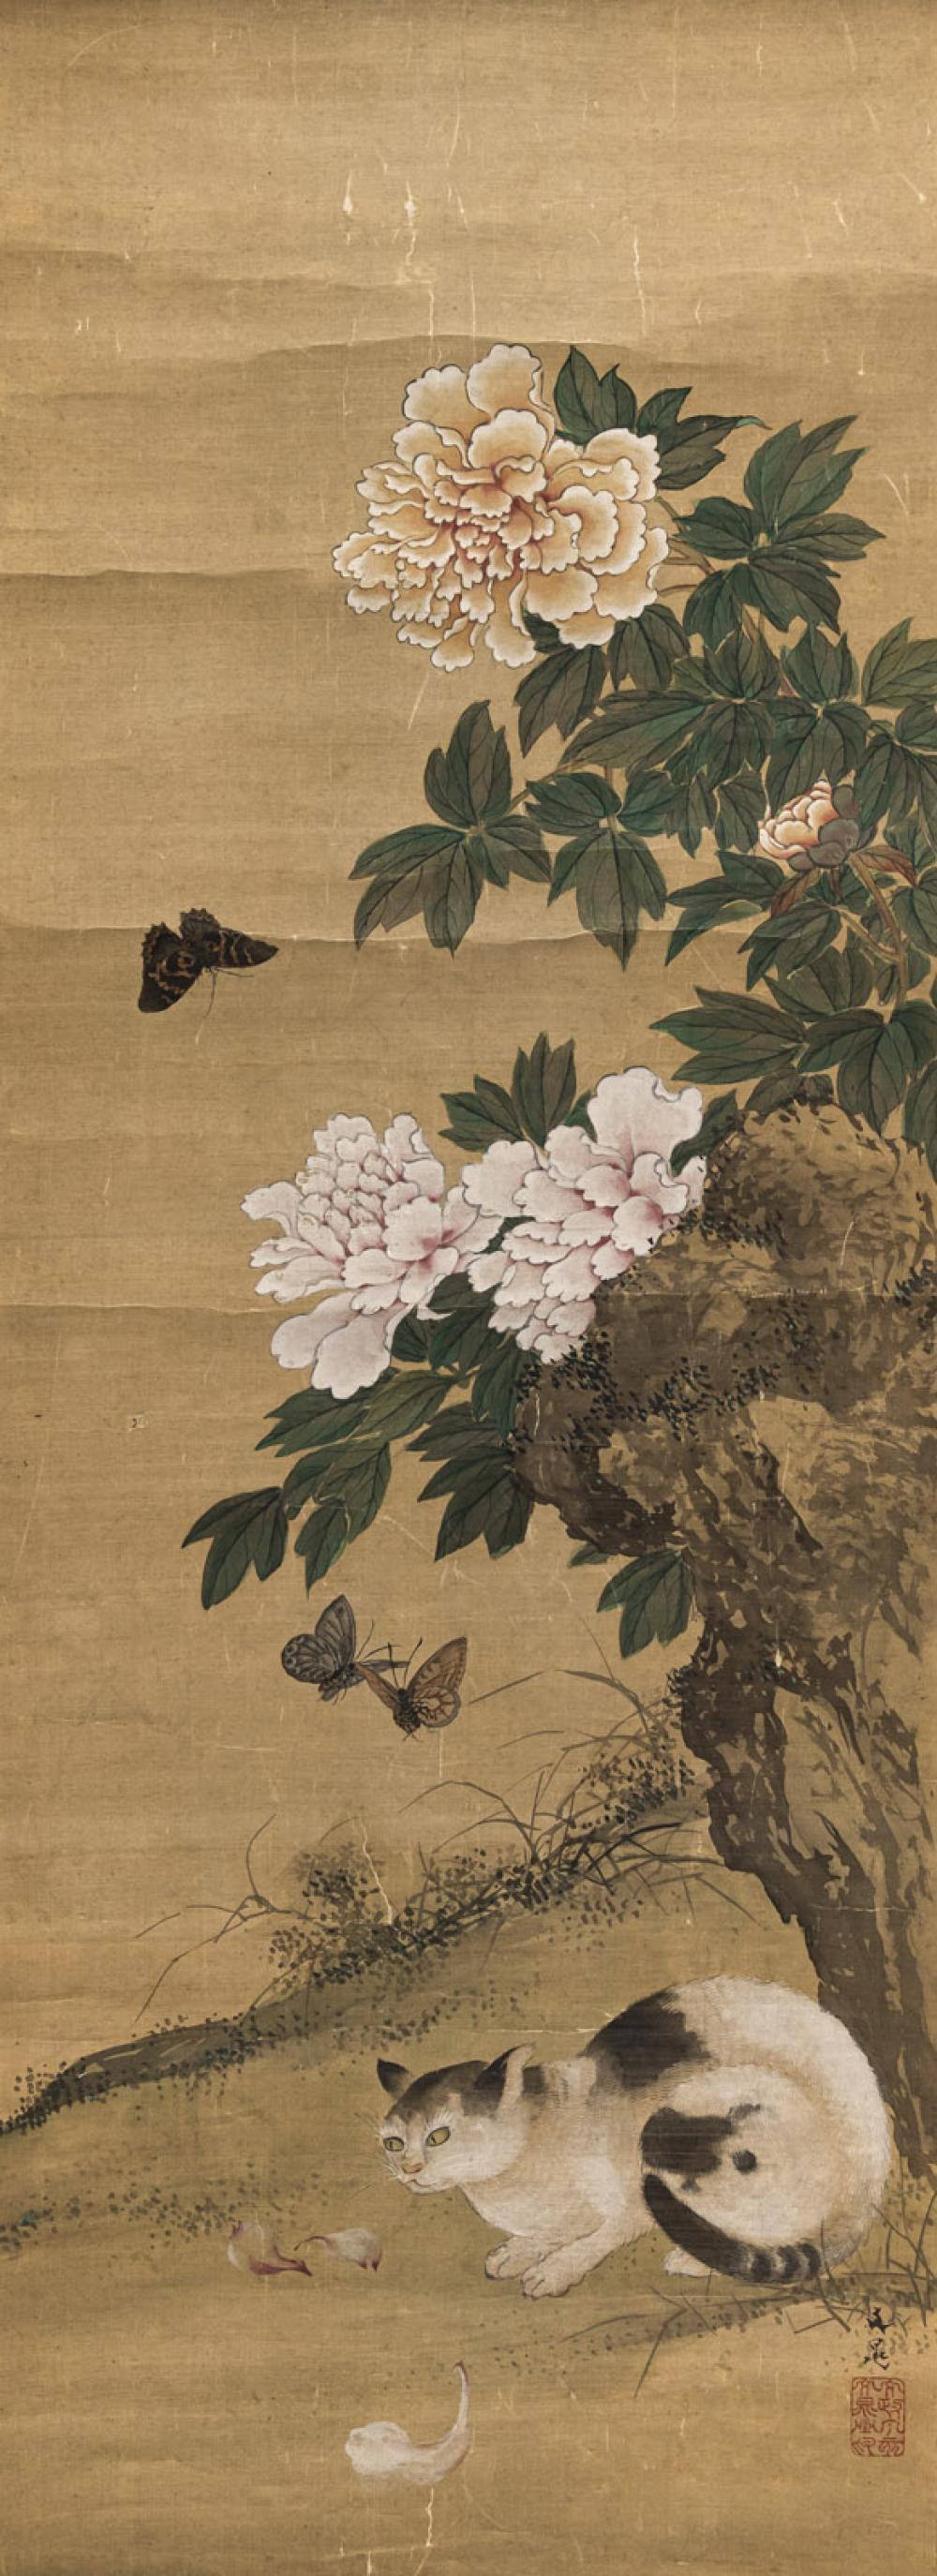 IN THE STYLE OF TANI BUNCHÔ (1763-1840)